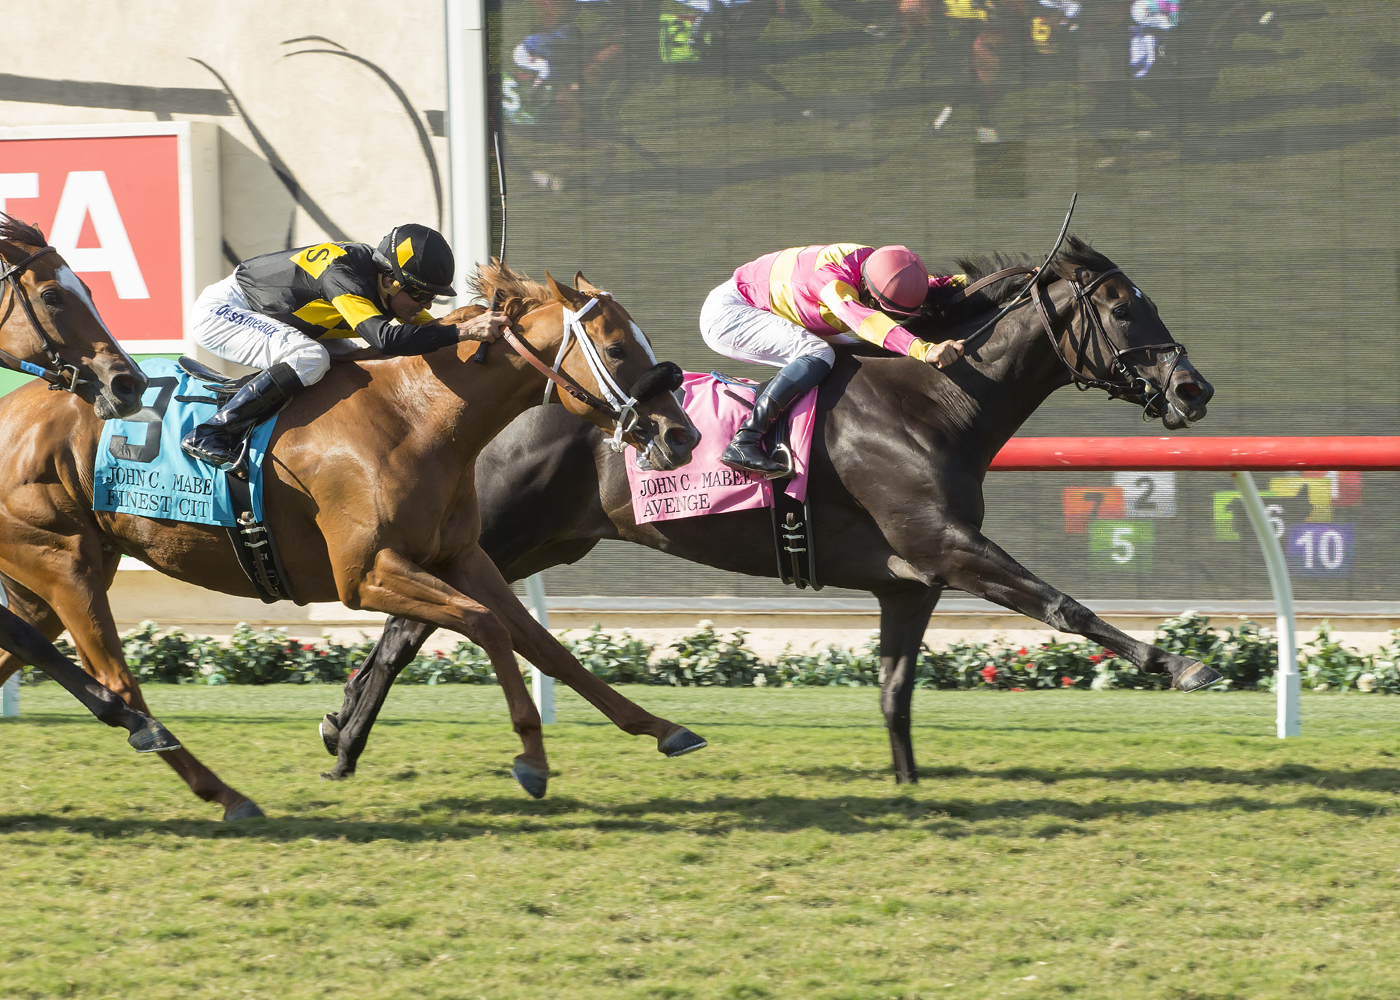 In a photo provided by Benoit Photo, Ramona Bass' Avenge and jockey Flavien Prat, right, outleg Finest City (Kent Desormeaux), left, to win the Grade II, $200,000 John C. Mabee Stakes, Sunday, Sept. 4, 2016 at Del Mar Thoroughbred Club in Del Mar, Calif.